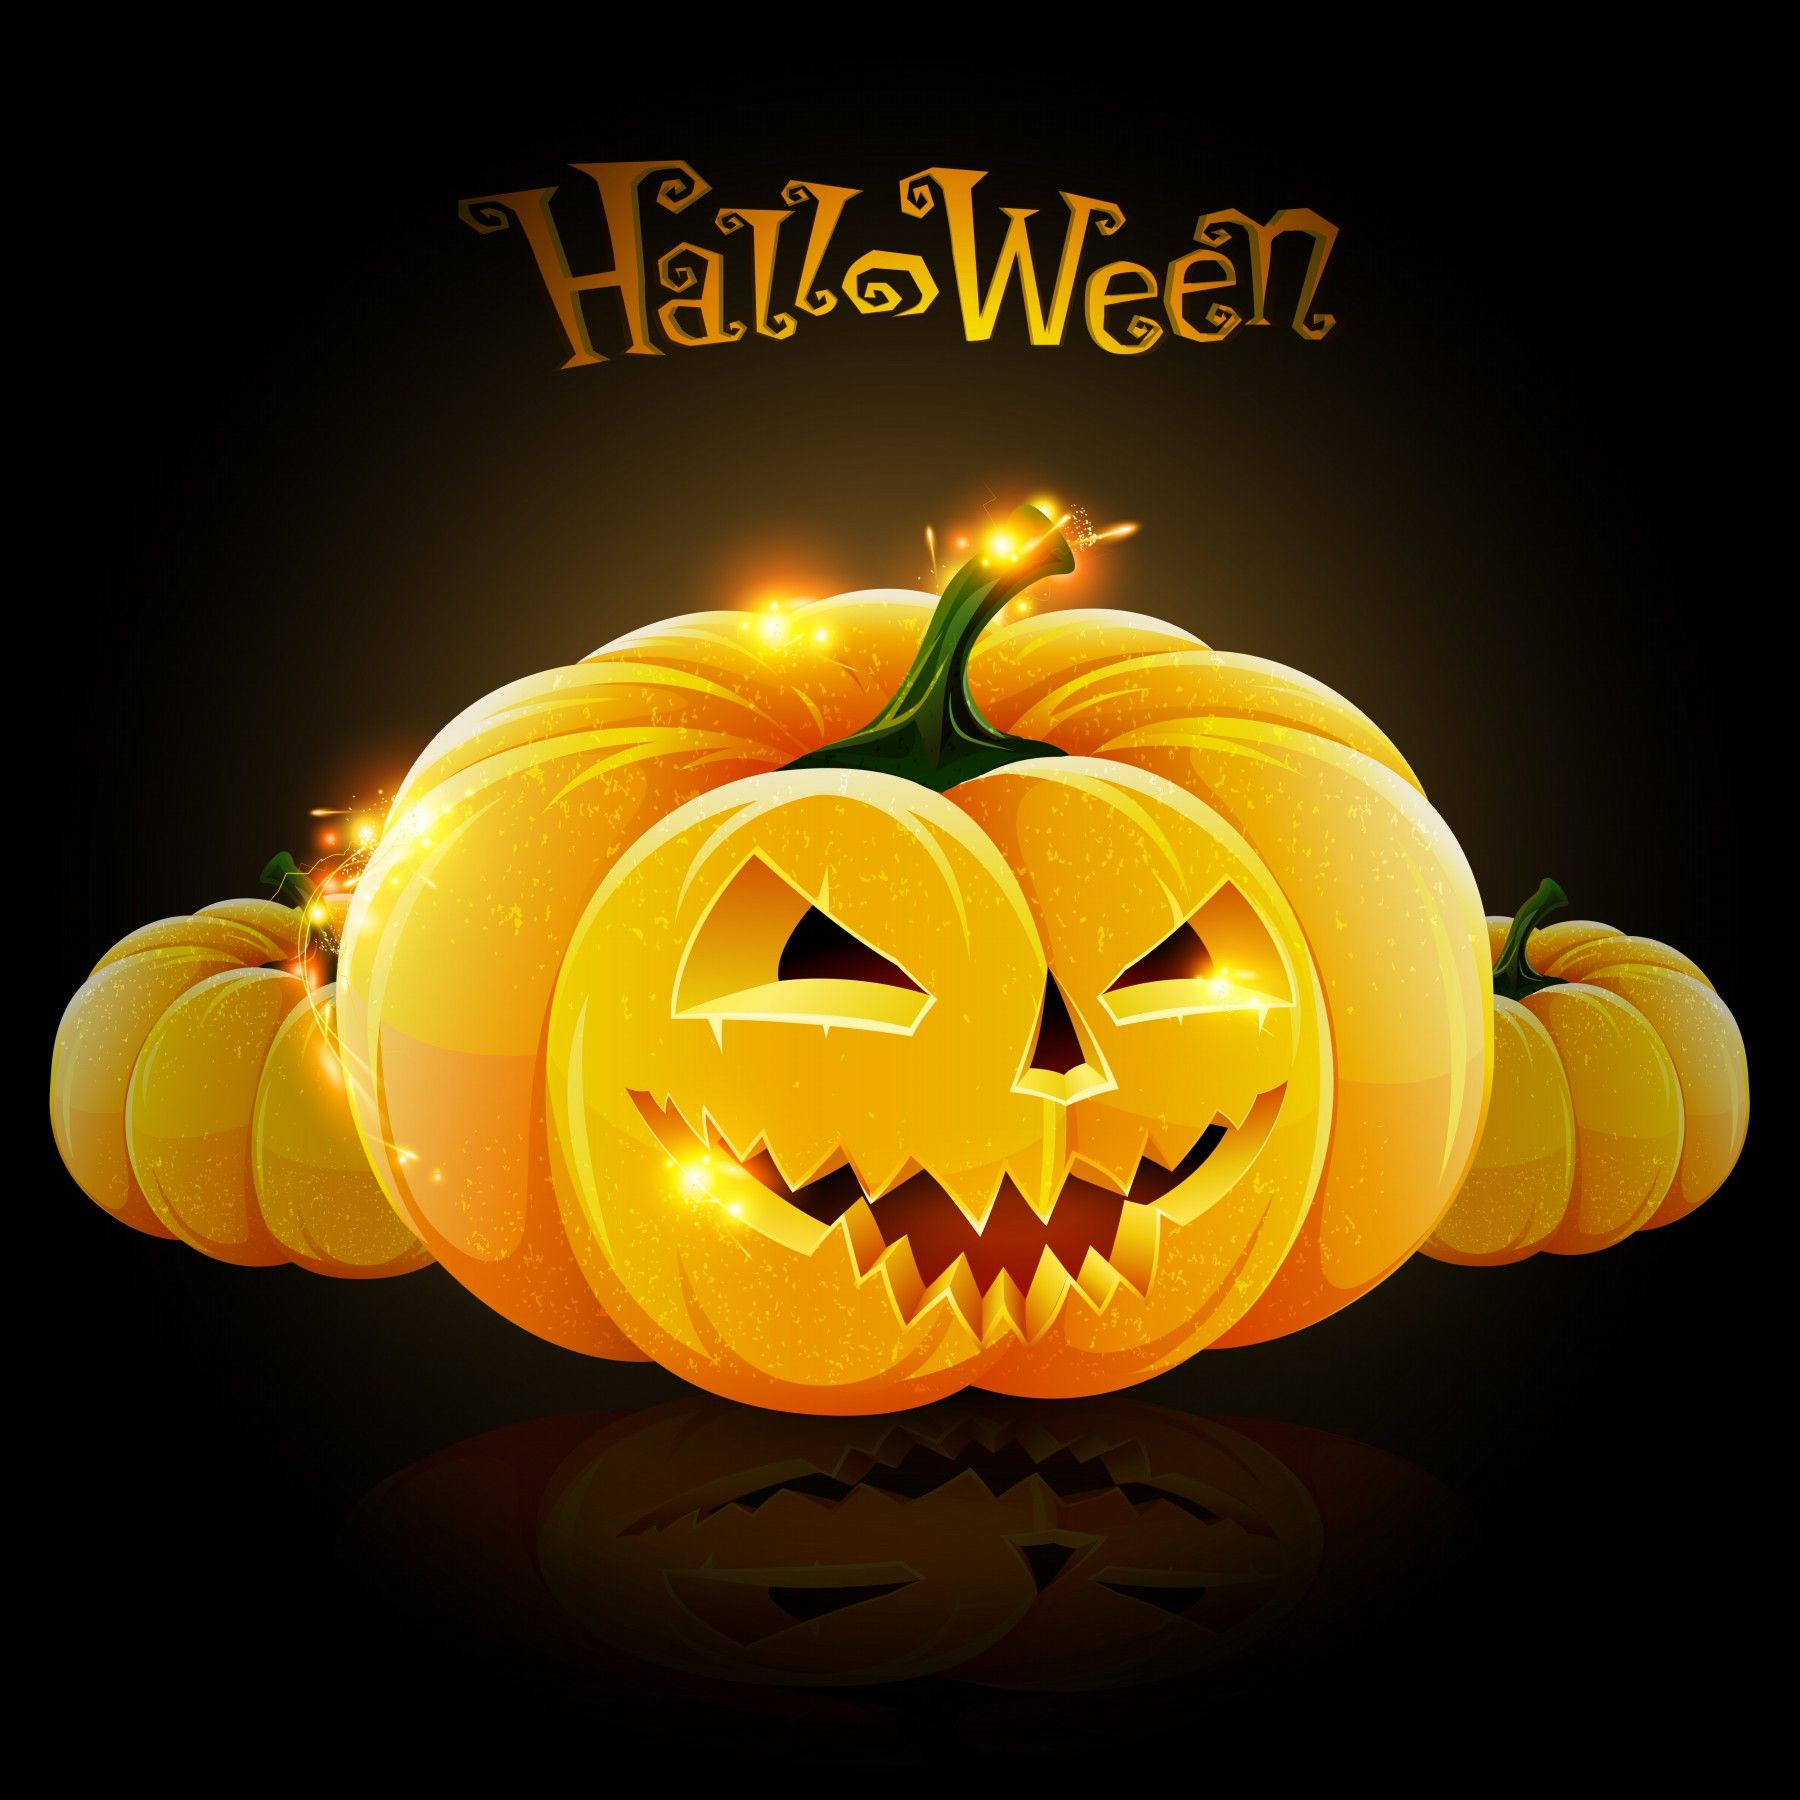 Halloween Quotes And Sayings Best Happy Halloween Images1.